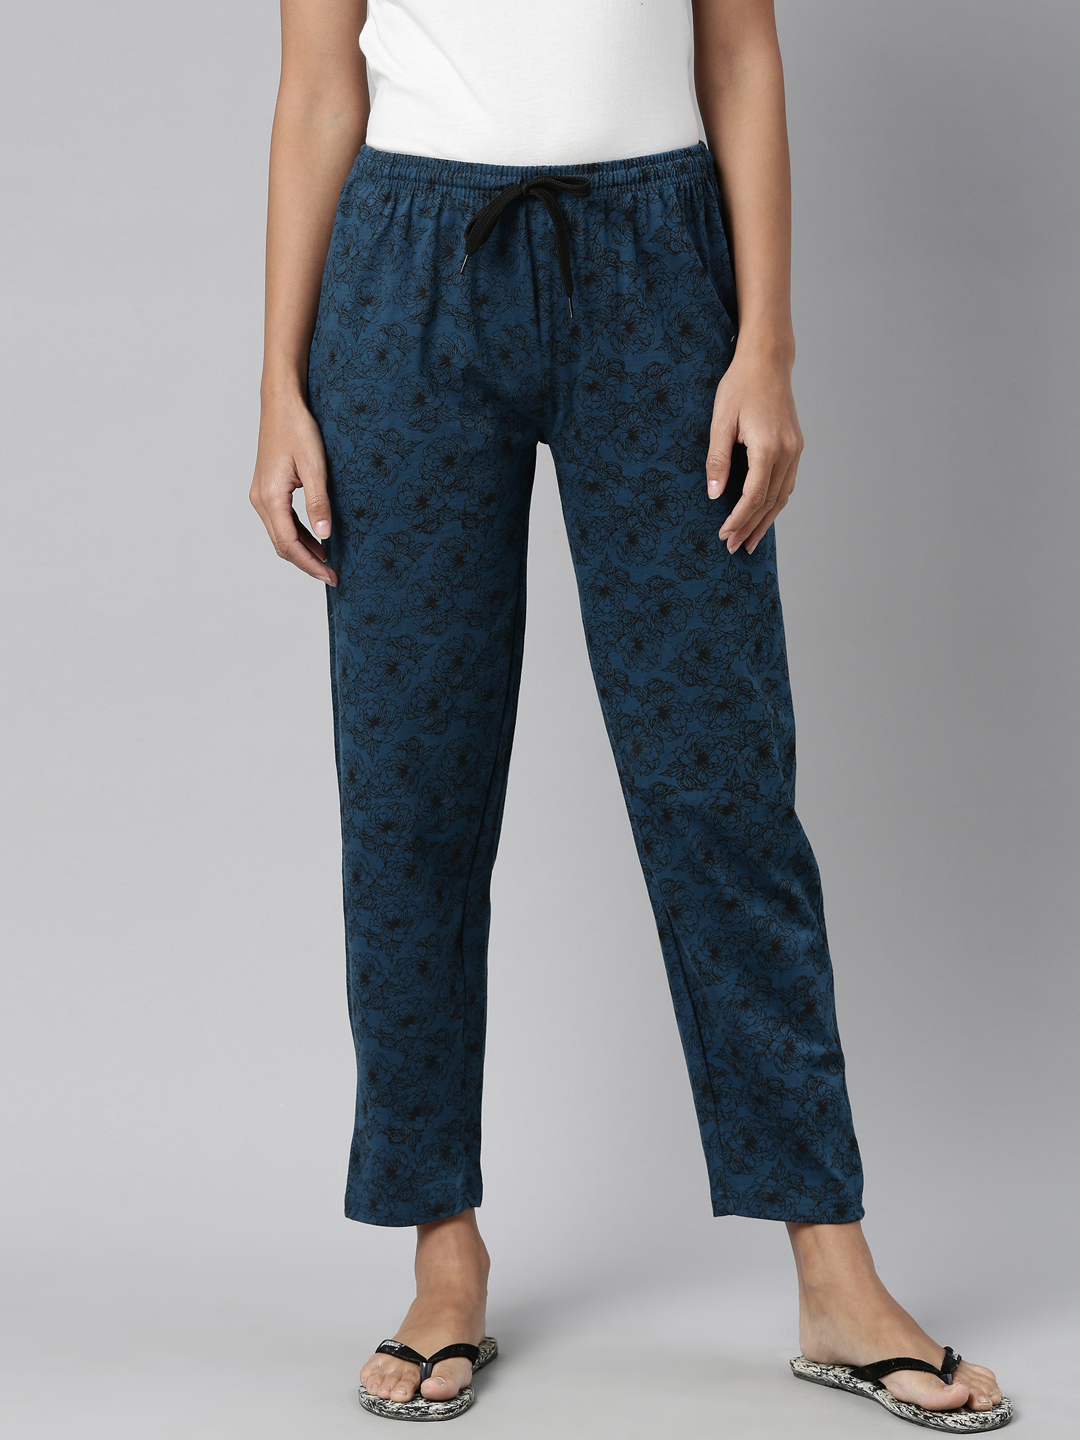 Kryptic | Kryptic Womens 100% Cotton all over printed lounge pant